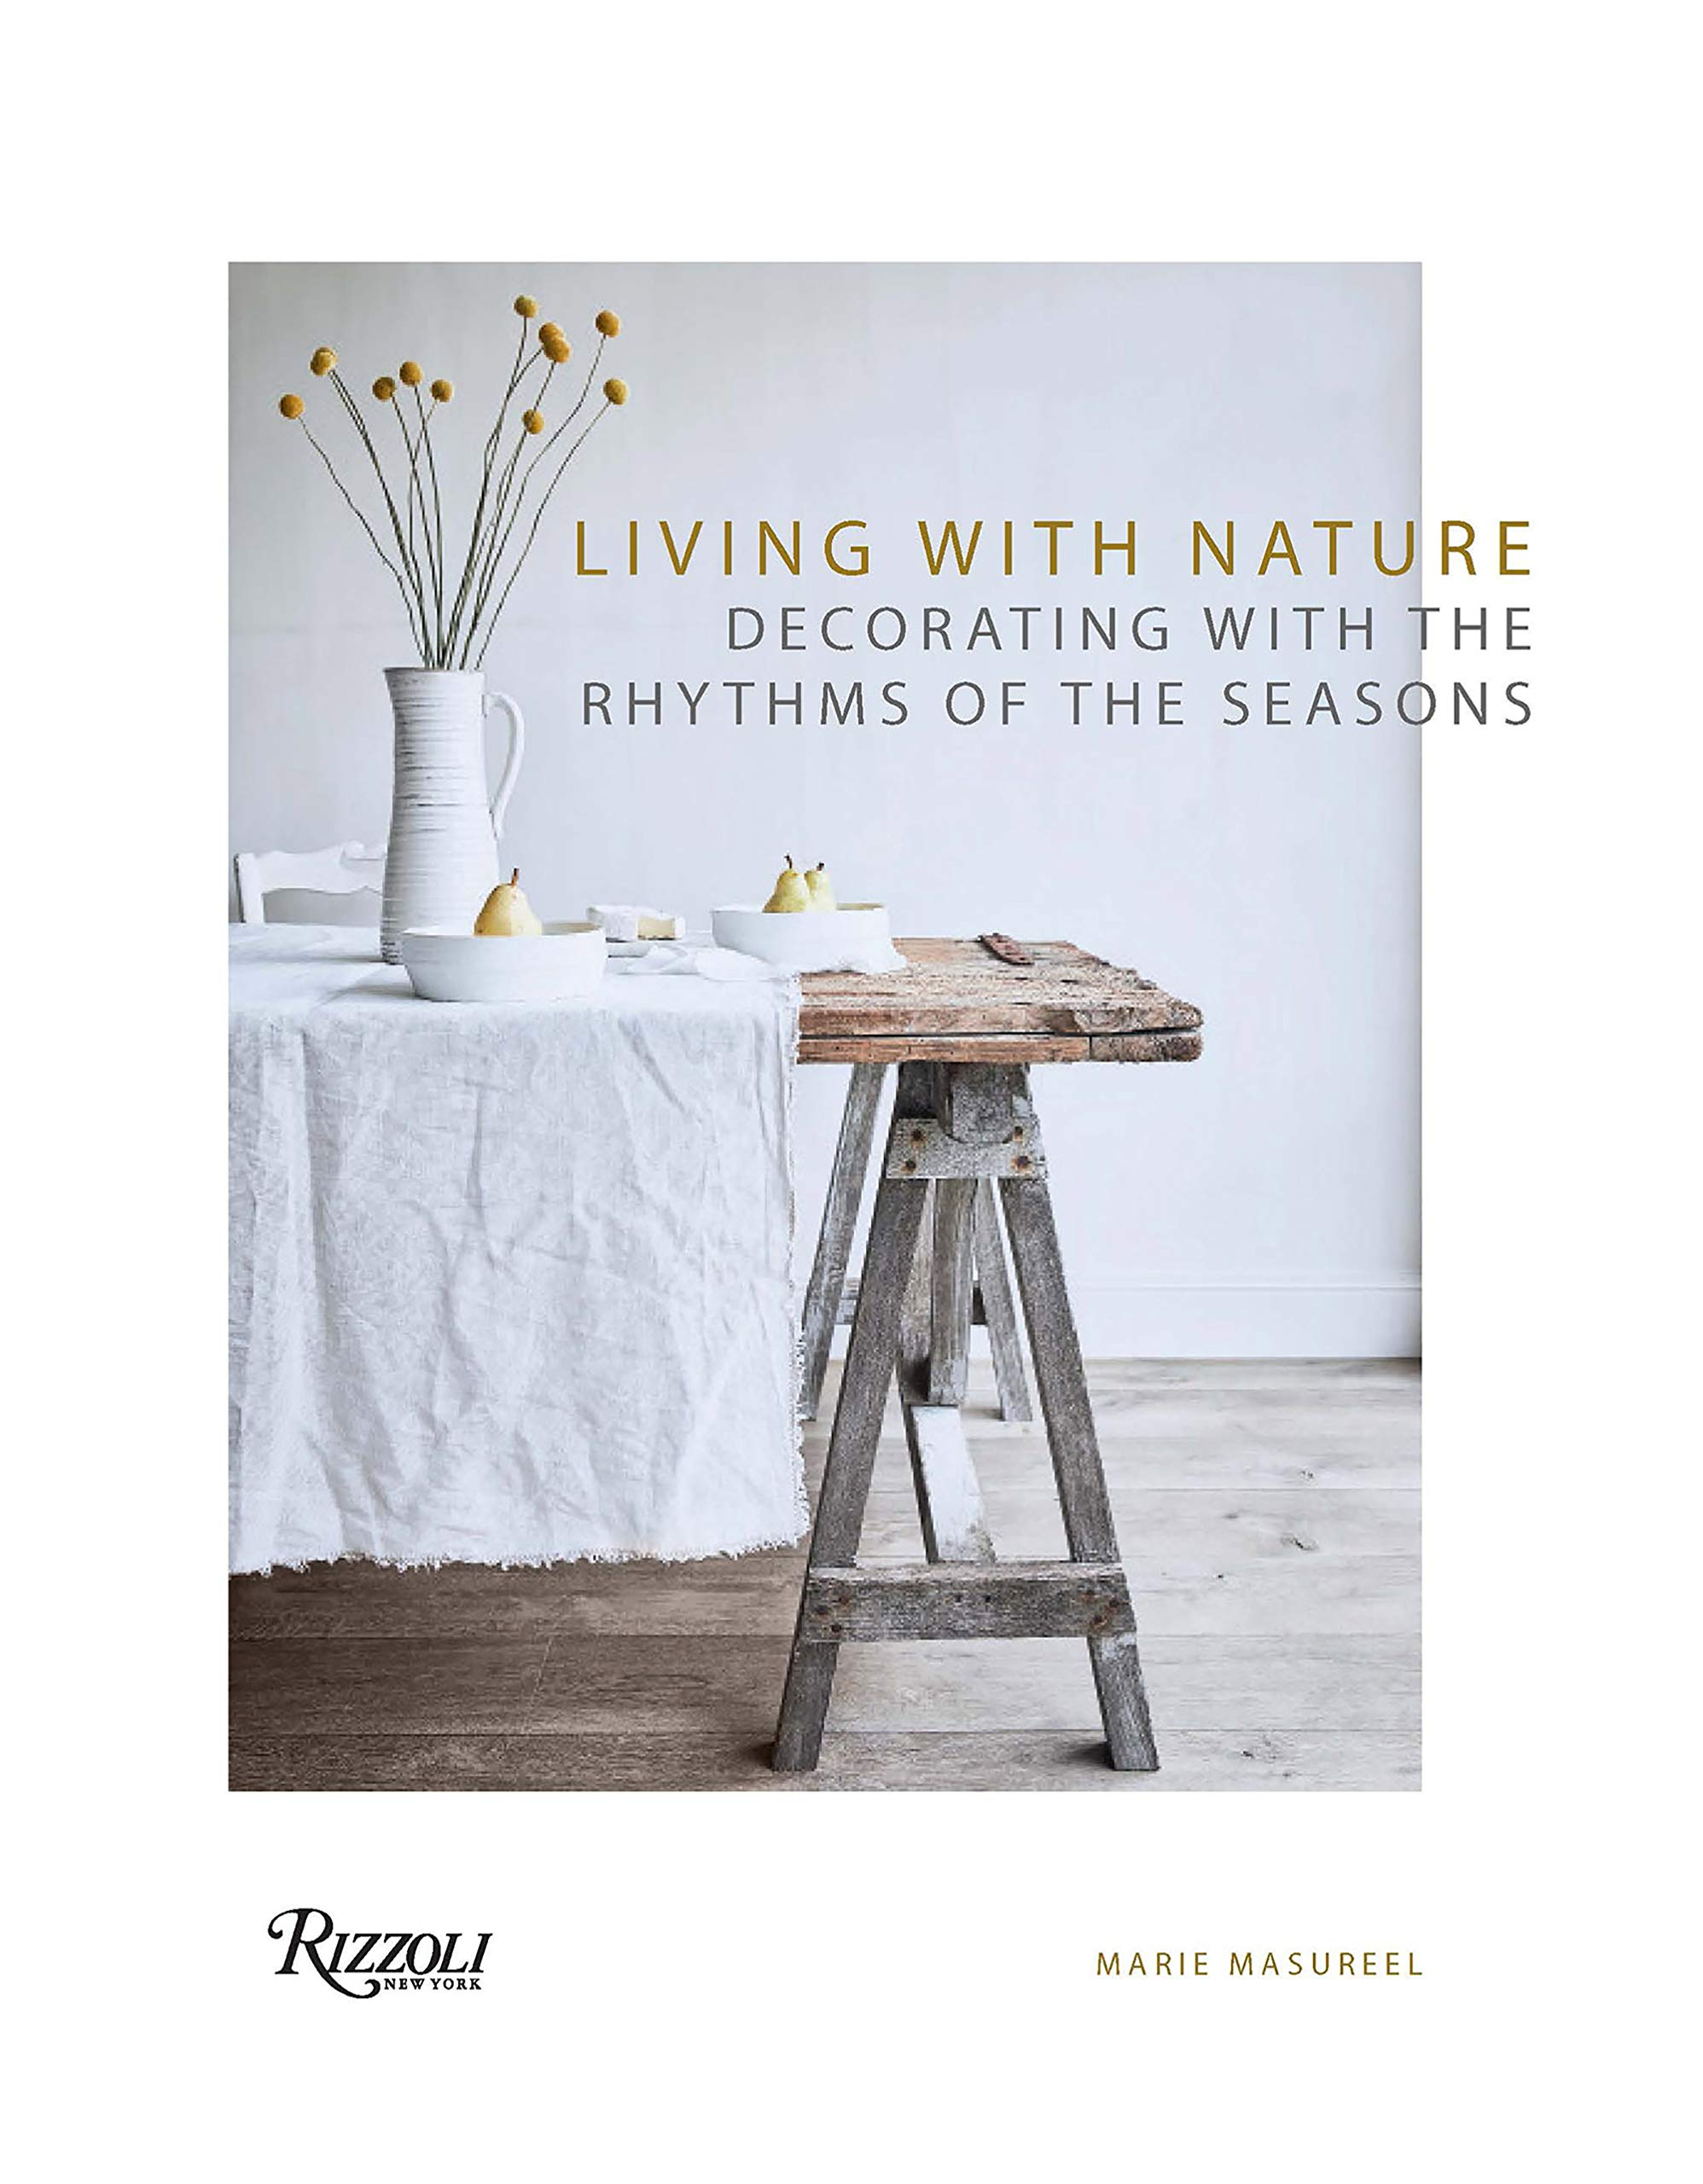 Living with Nature Decorating with the Rhythms of the Seasons